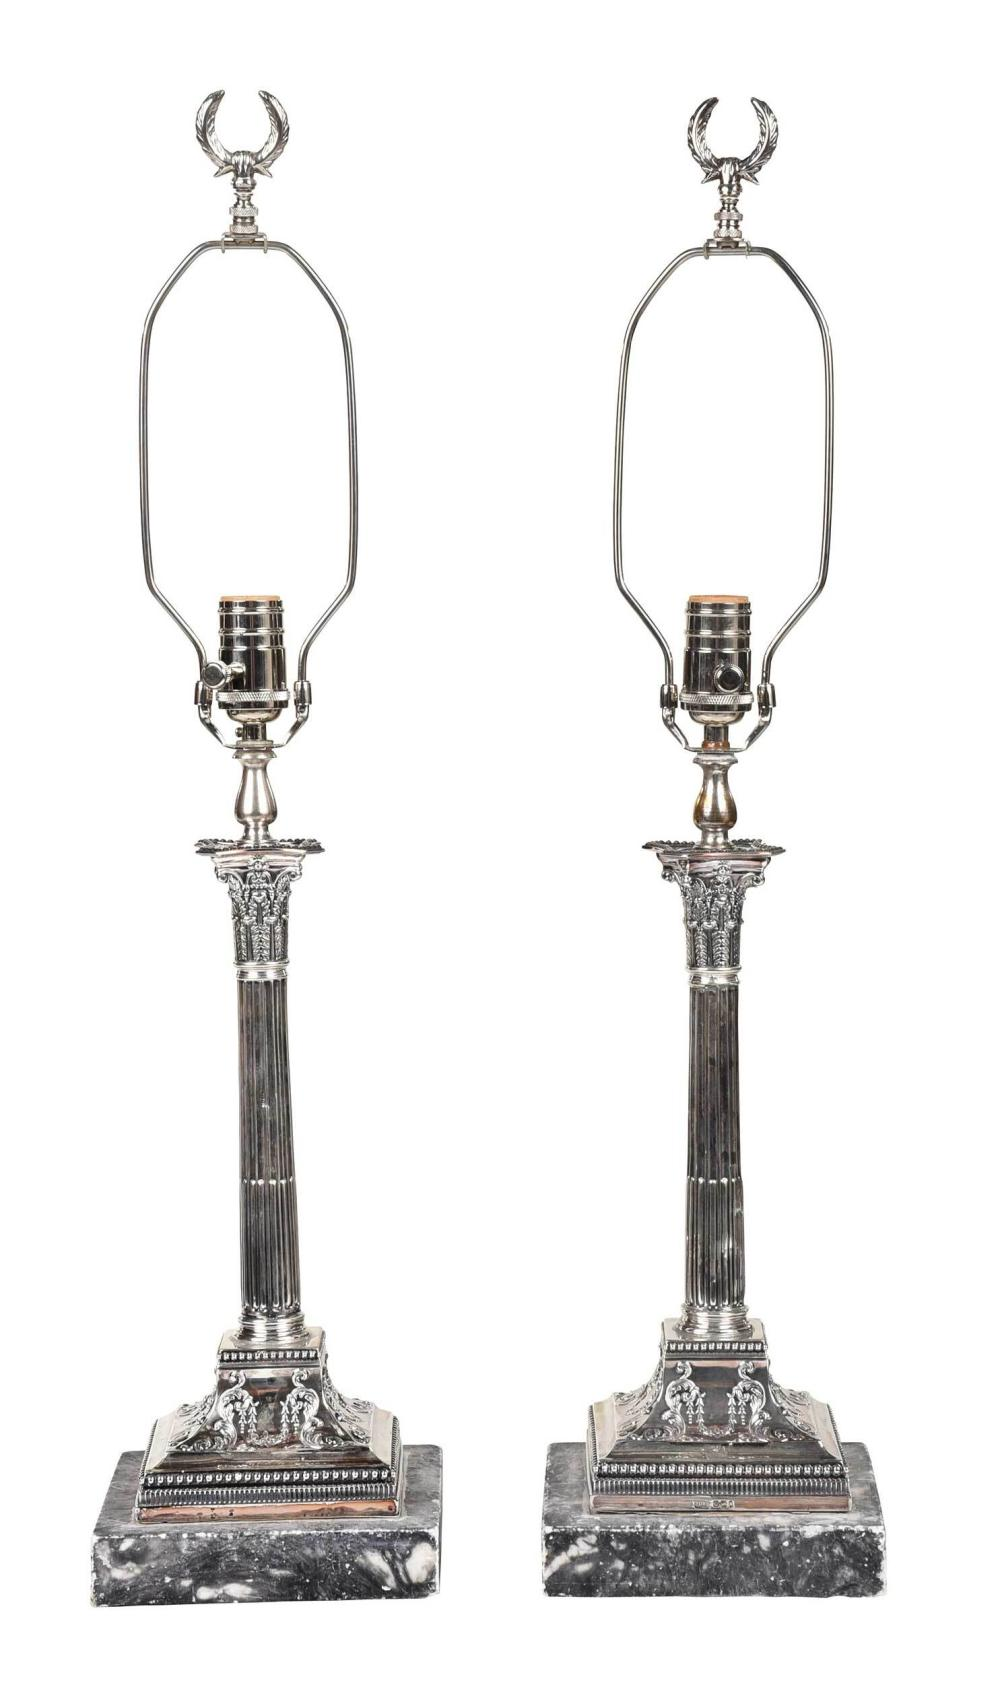 Pair of English Silver Candlesticks/Lamps